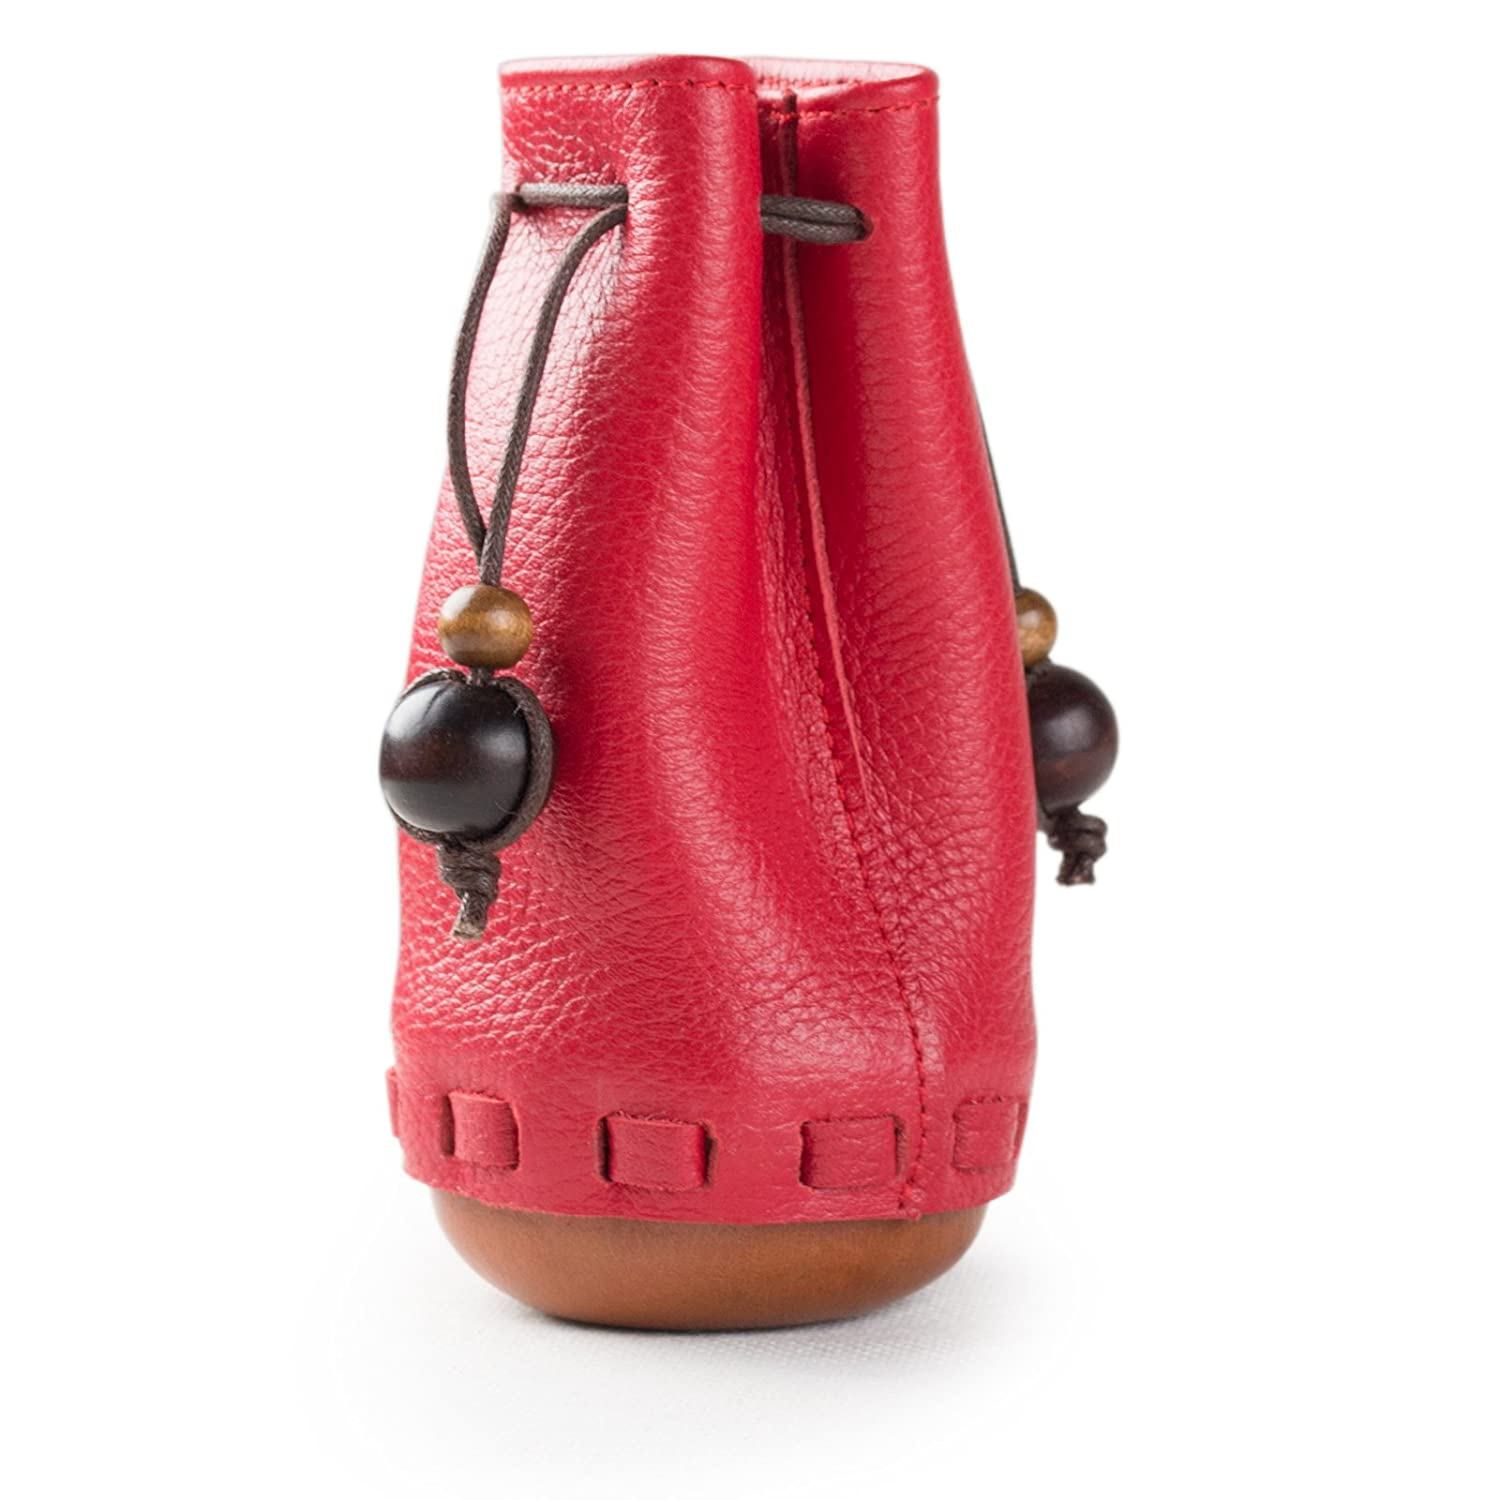 Women's Genuine Red Leather Handmade Drawstring Coin Pouch Bag